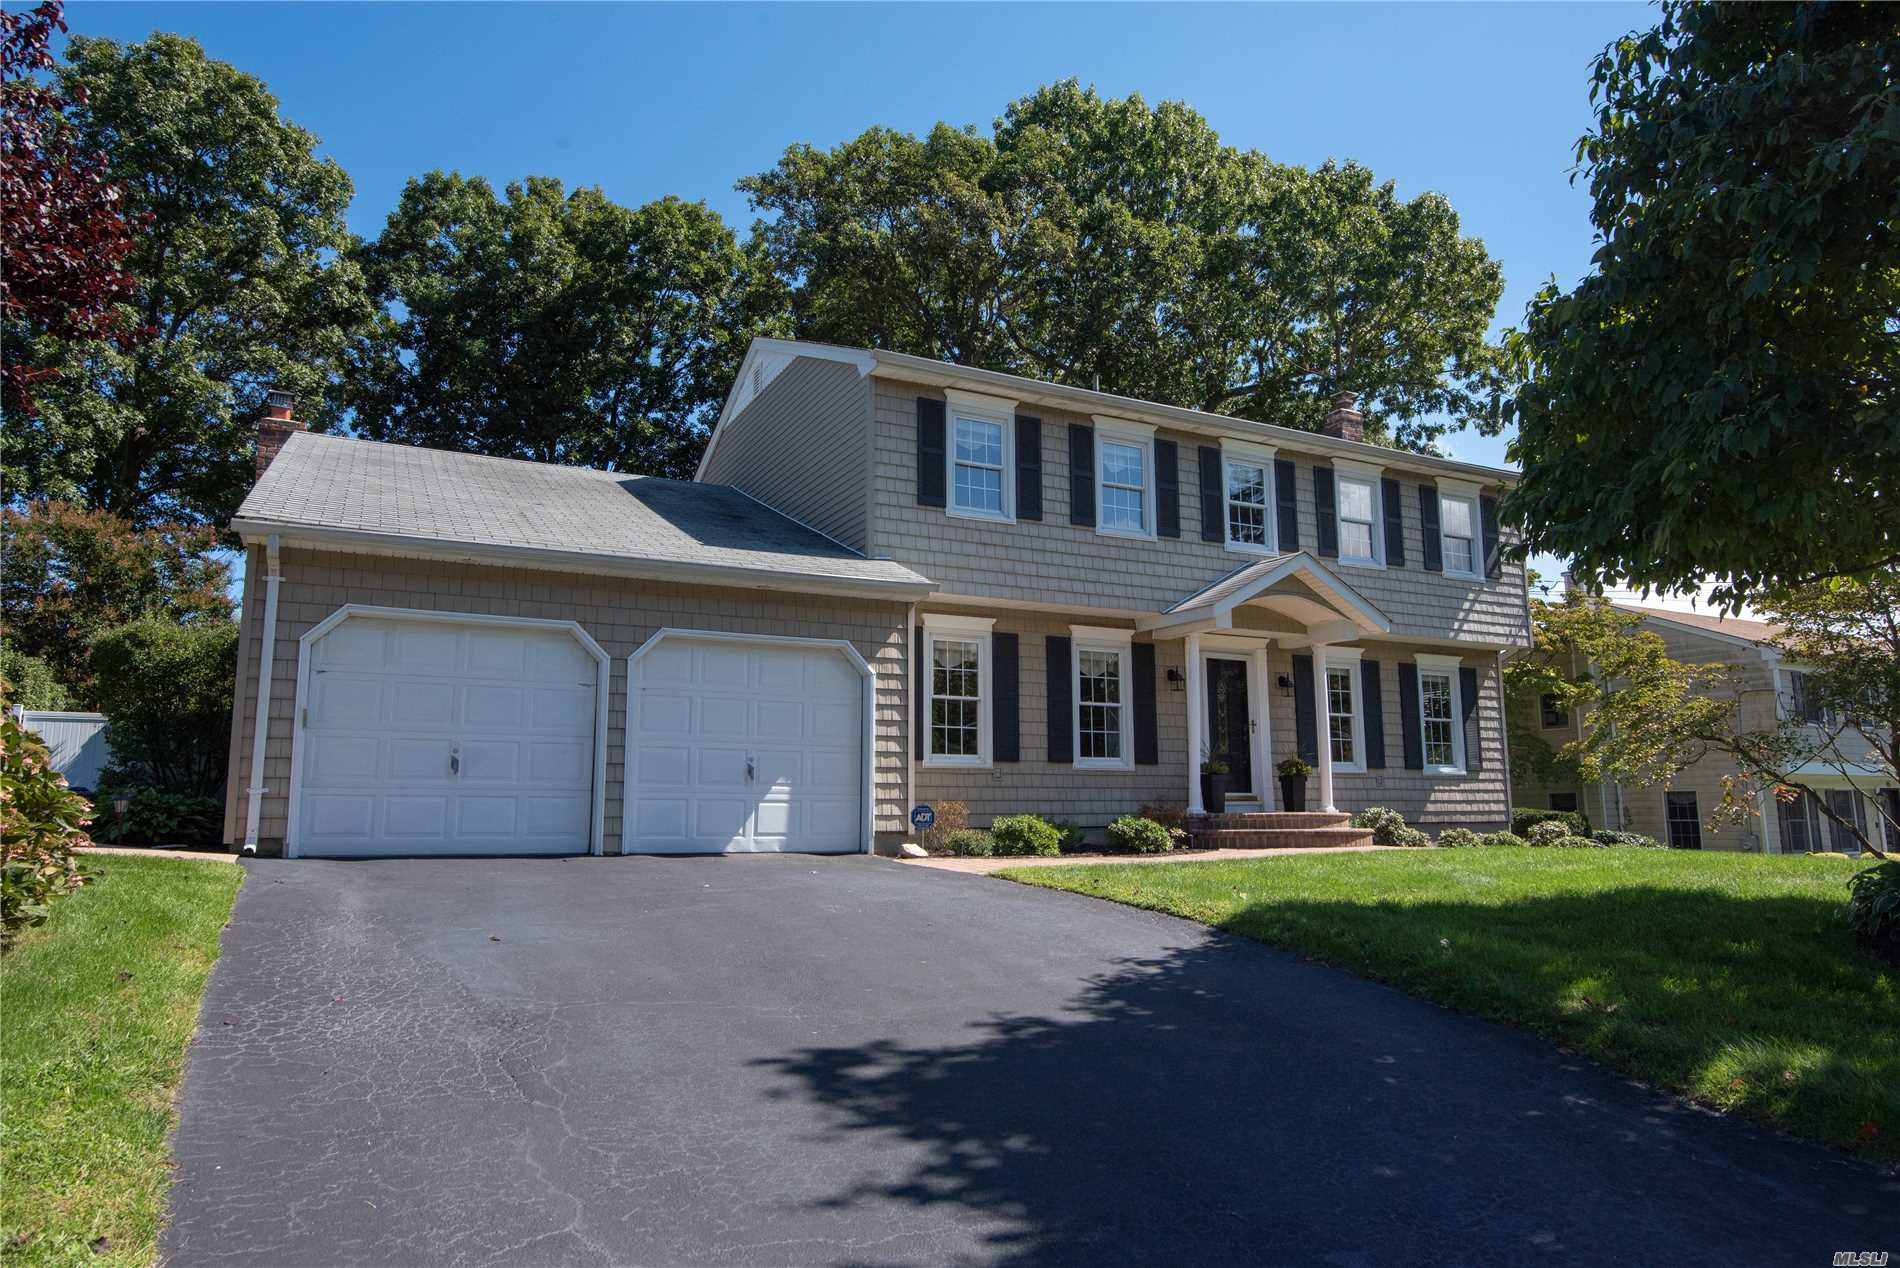 48 Woodland Rd - Miller Place, New York